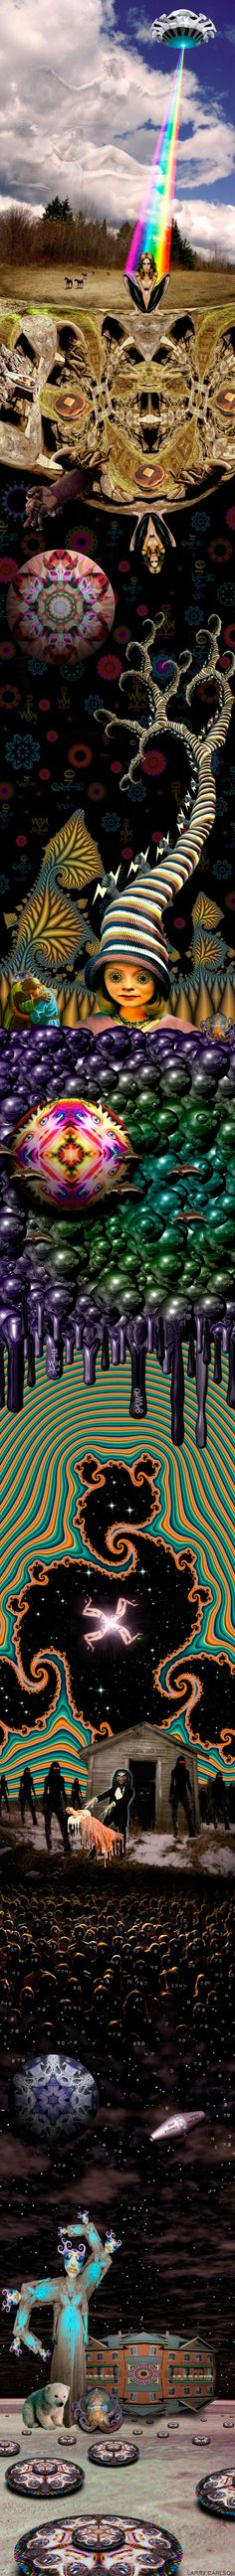 THE MAGIC FLESH AND BLACK LIGHT SHOW    Larry Carlson!